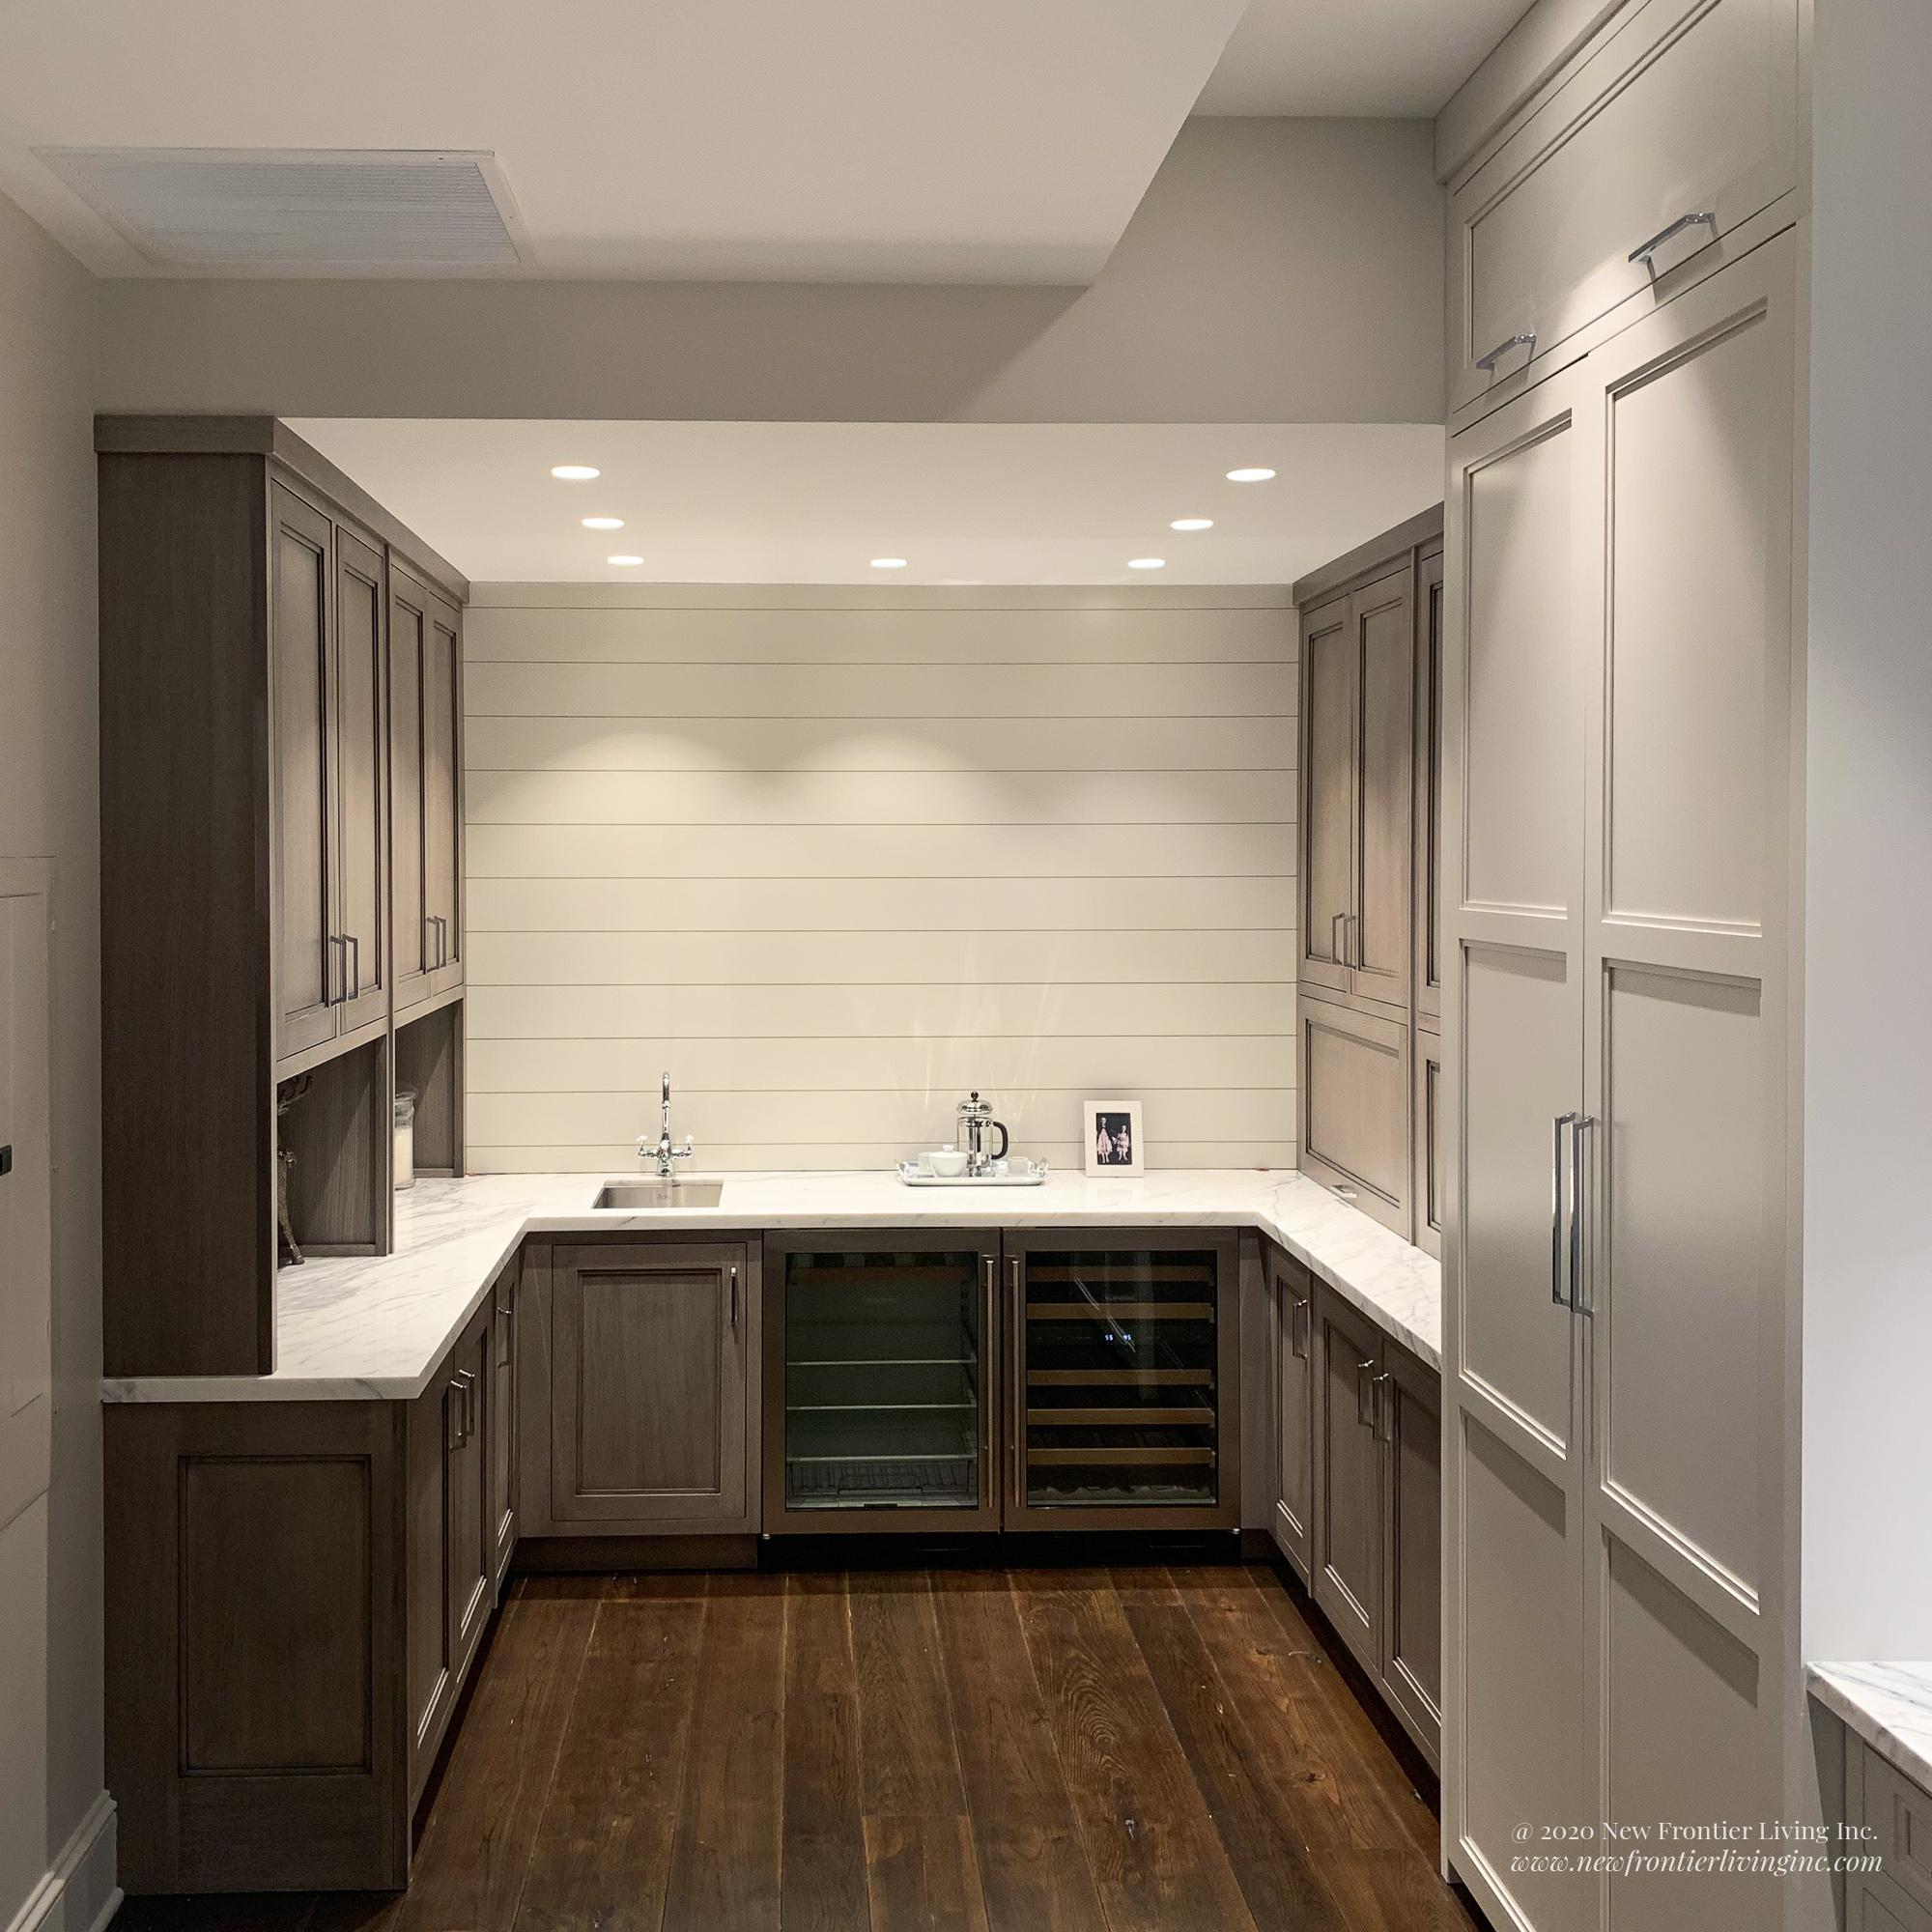 Long shot of Matte finish traditional peach kitchen cabinetry  with white countertop